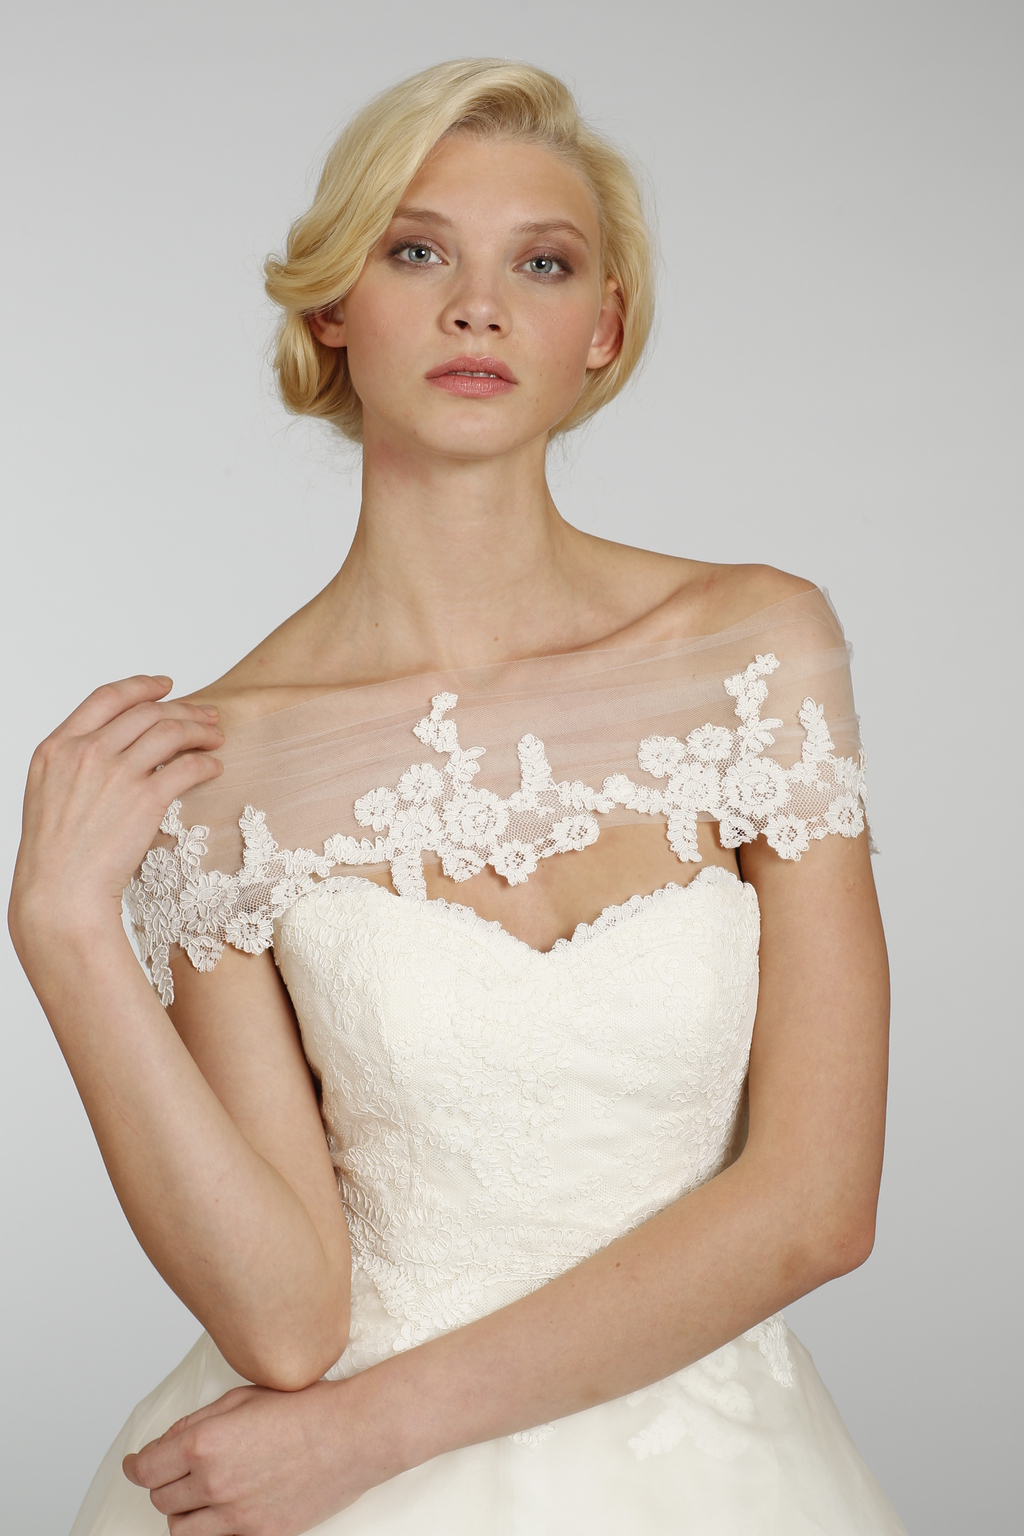 Spring-2013-wedding-dress-hayley-paige-bridal-gowns-6309-d.full